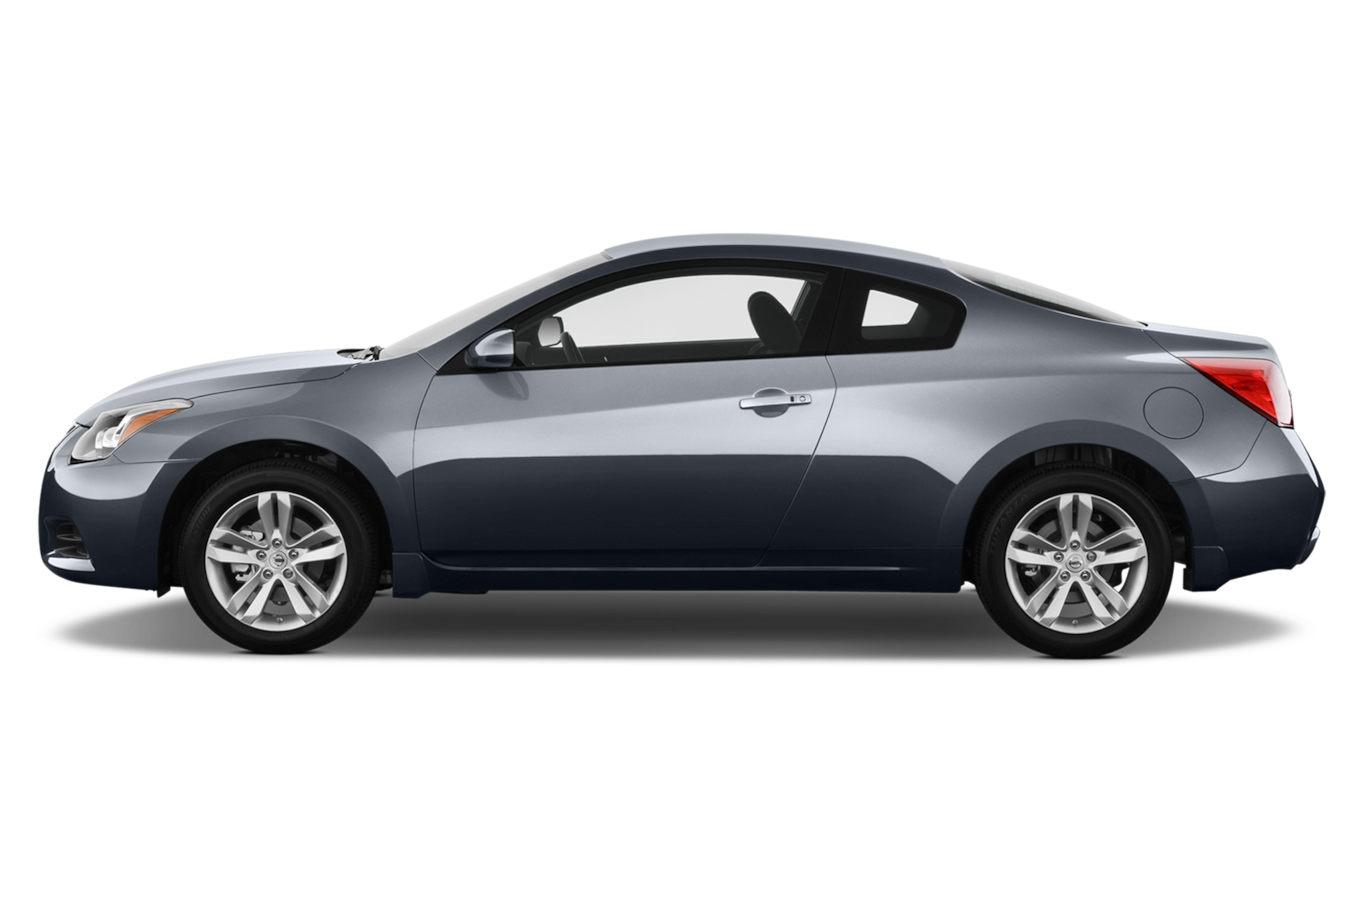 28 The Best 2010 Nissan Altima Coupe Release Date And Concept